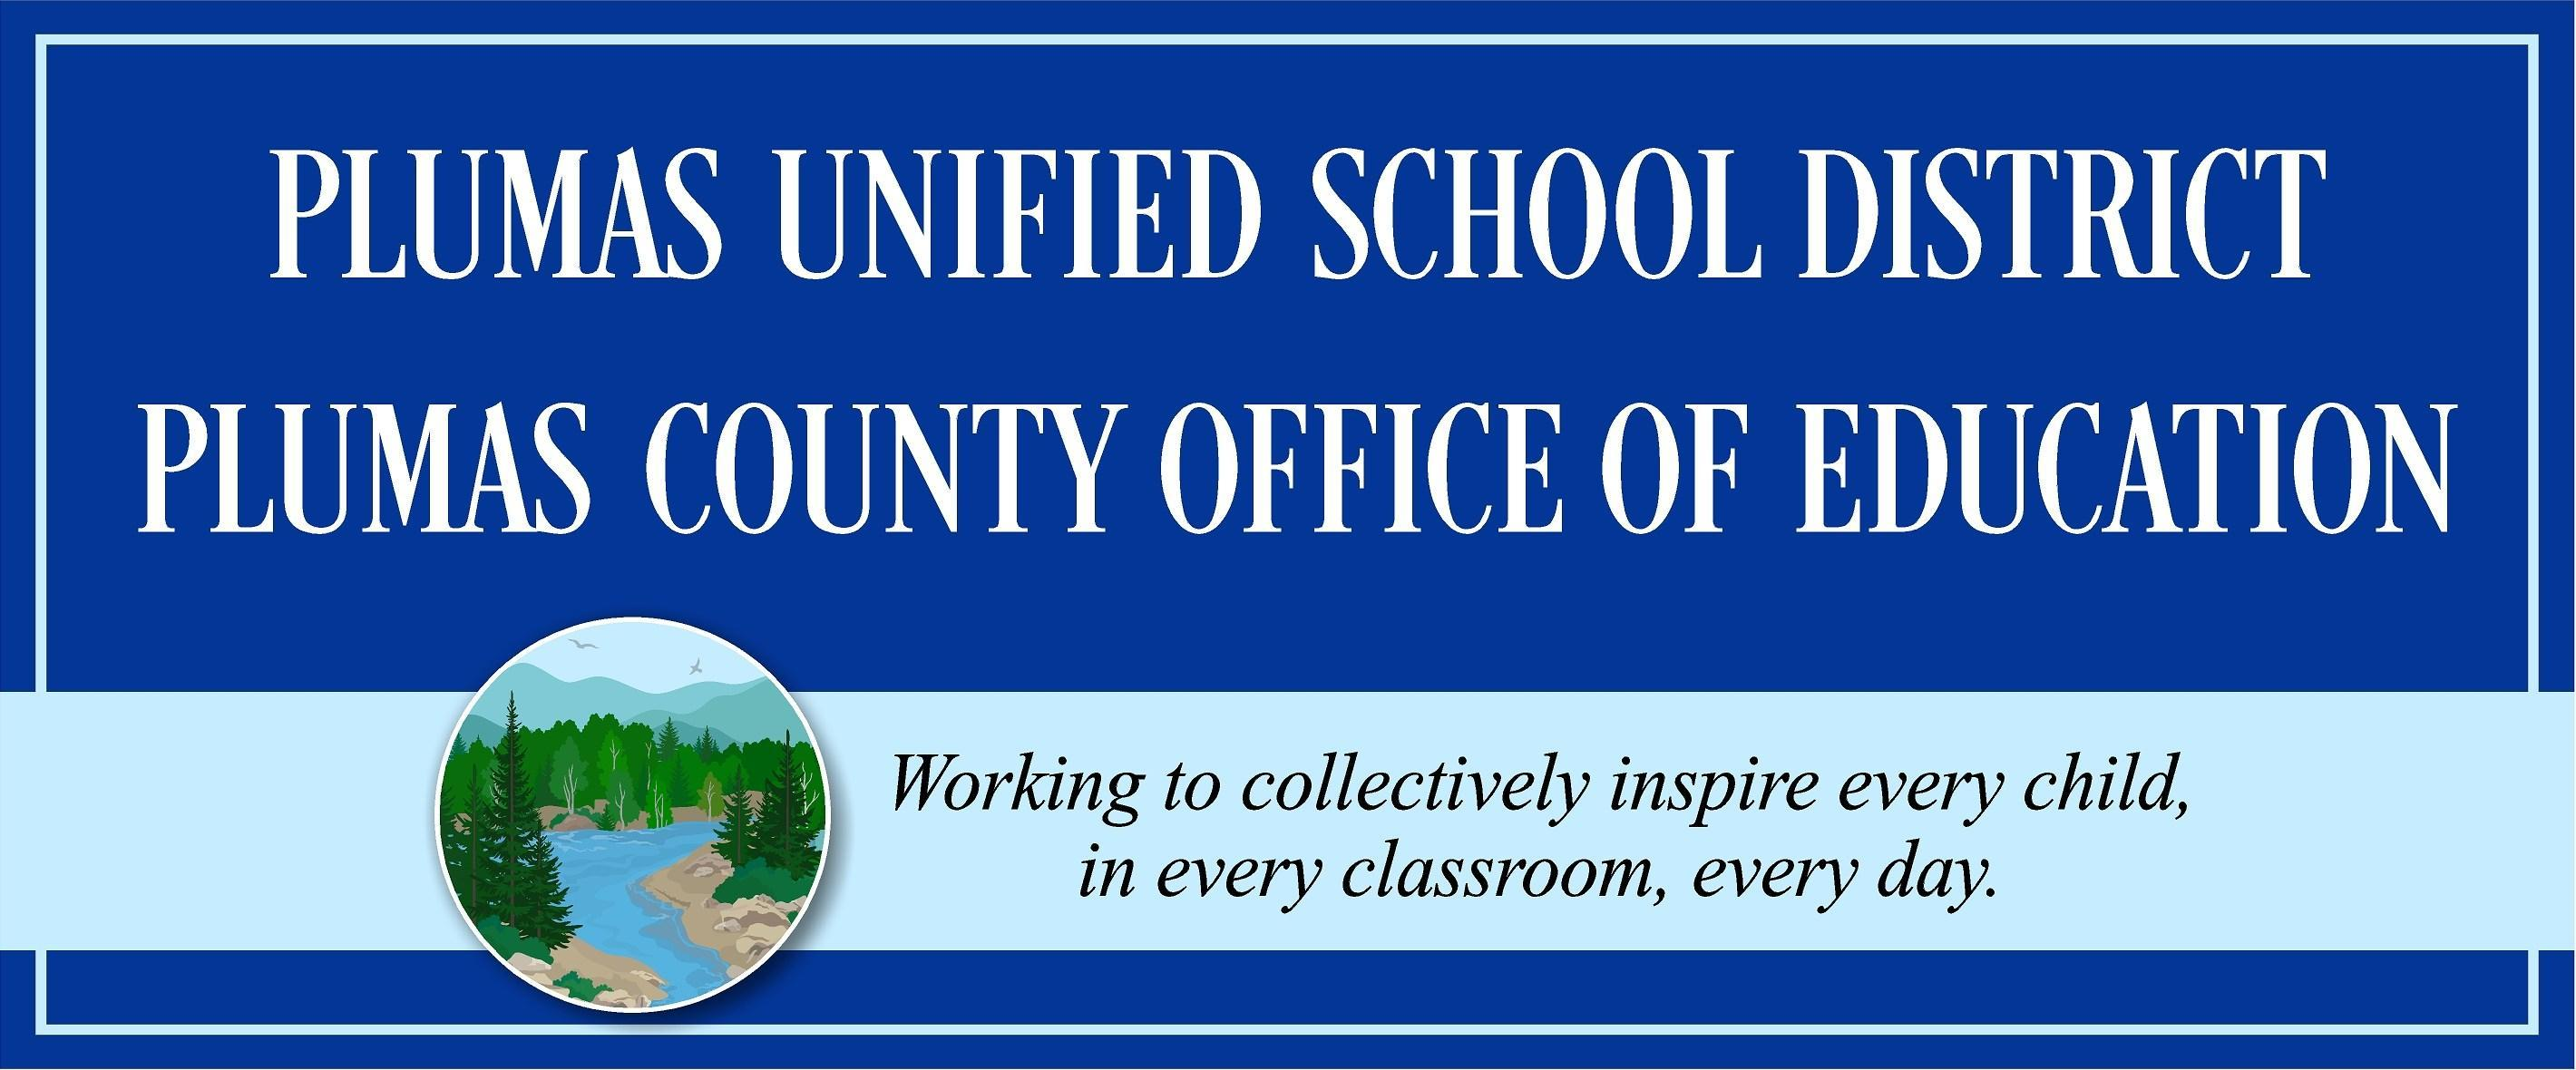 Plumas Unified School District banner and logo